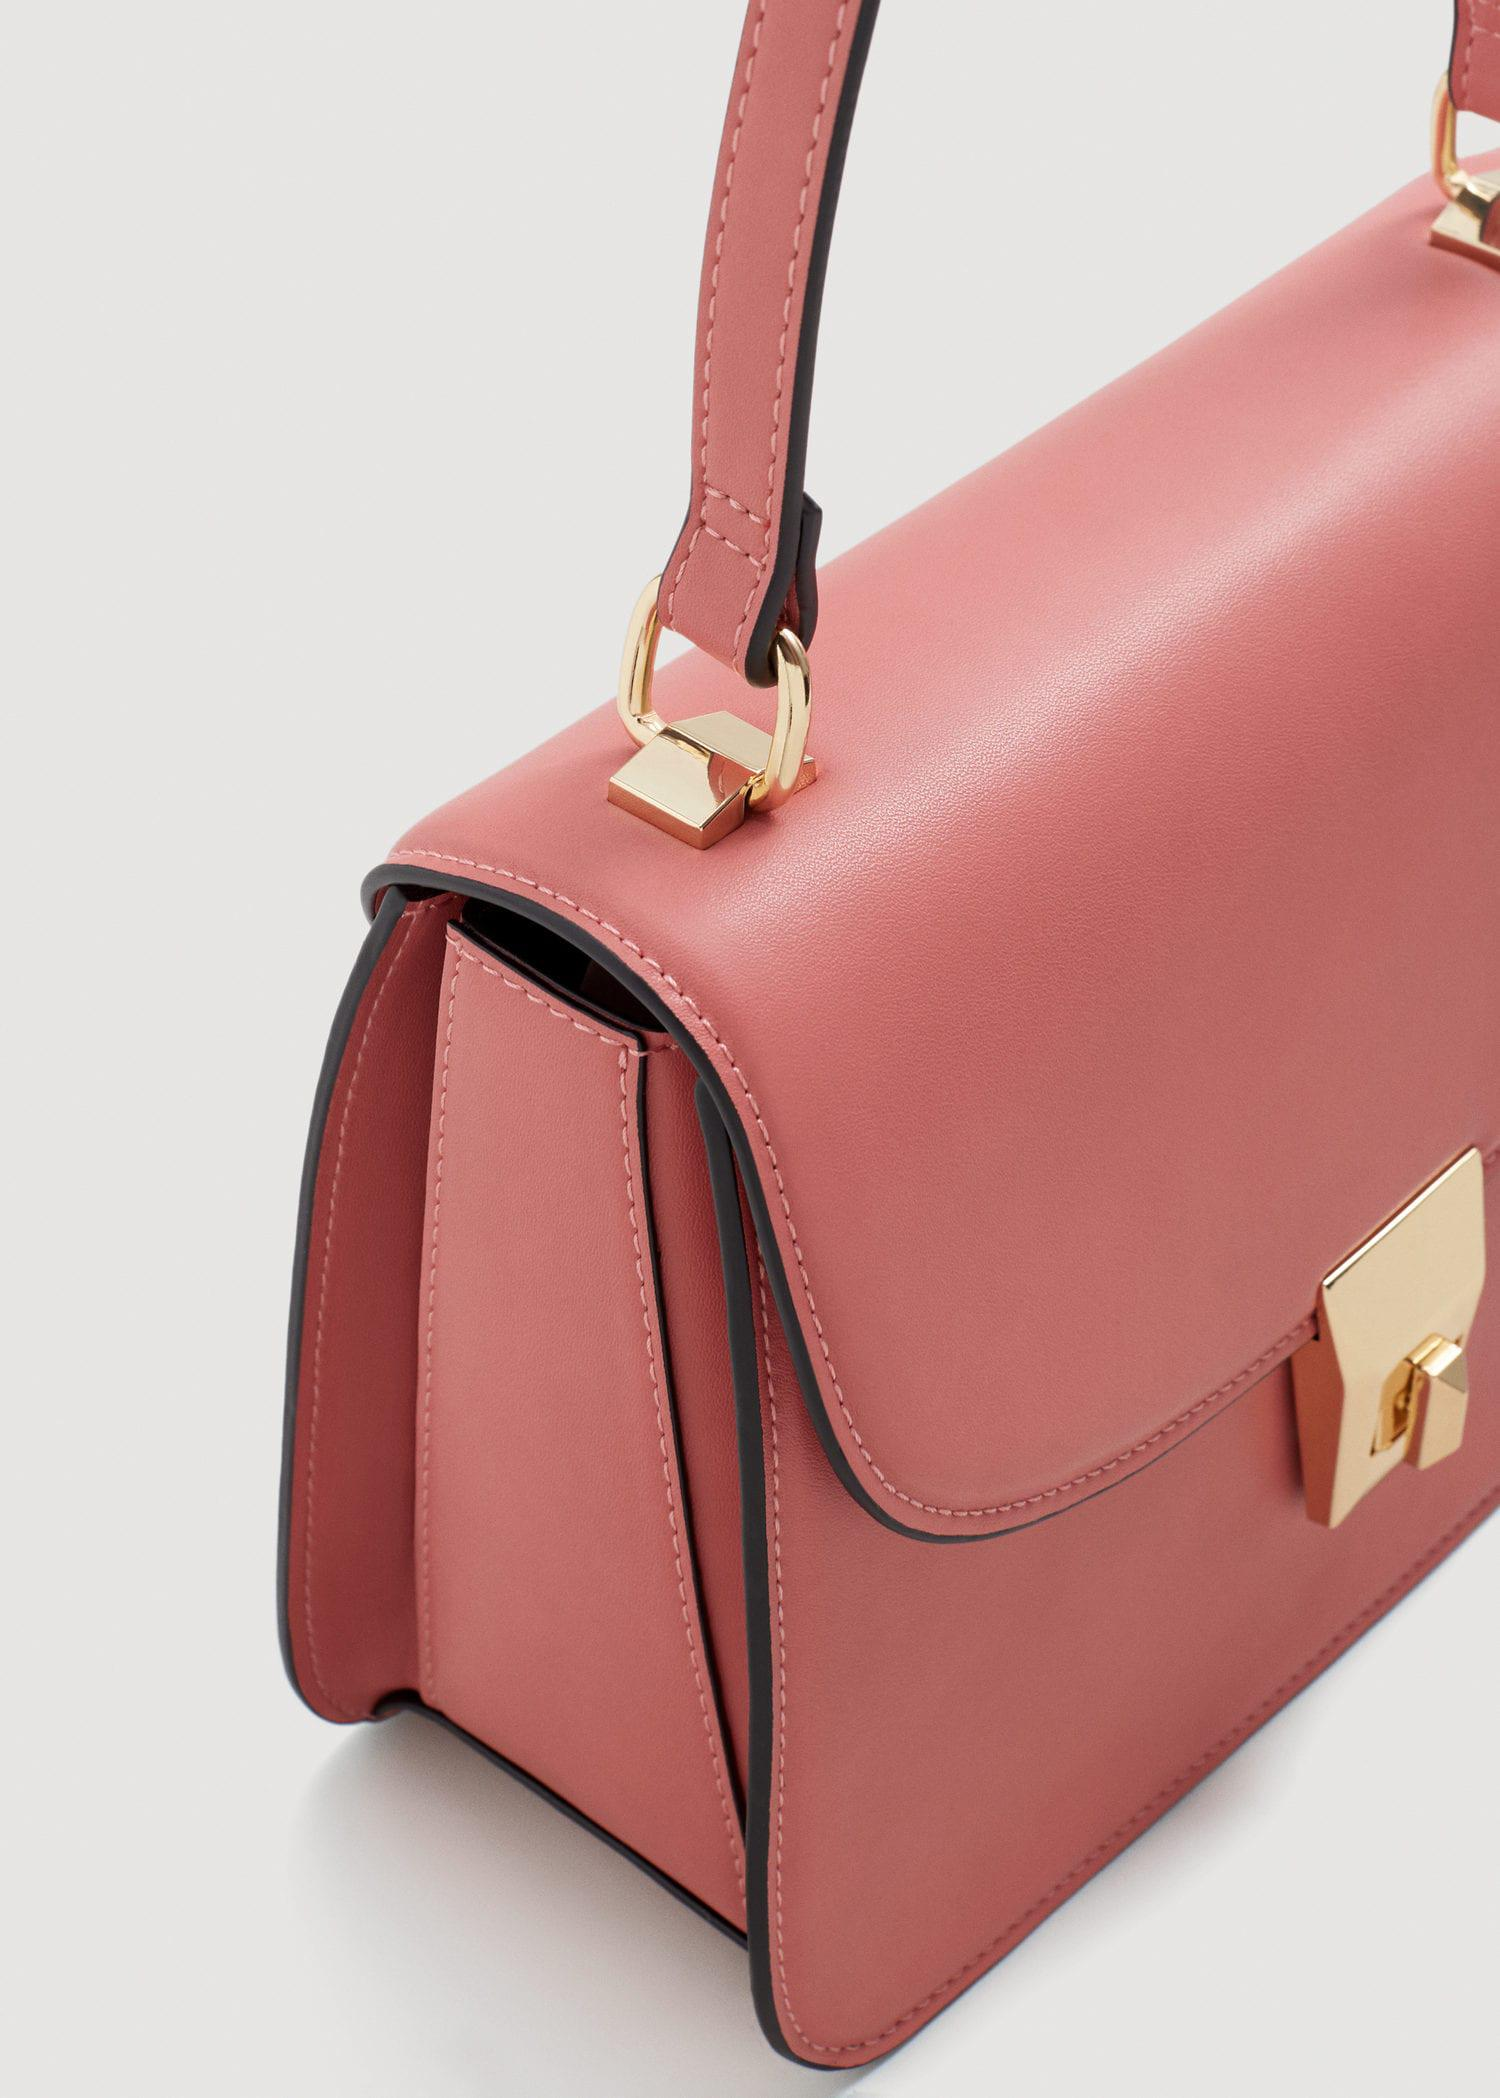 Mango Leather Pebbled Cross-body Bag in Pink